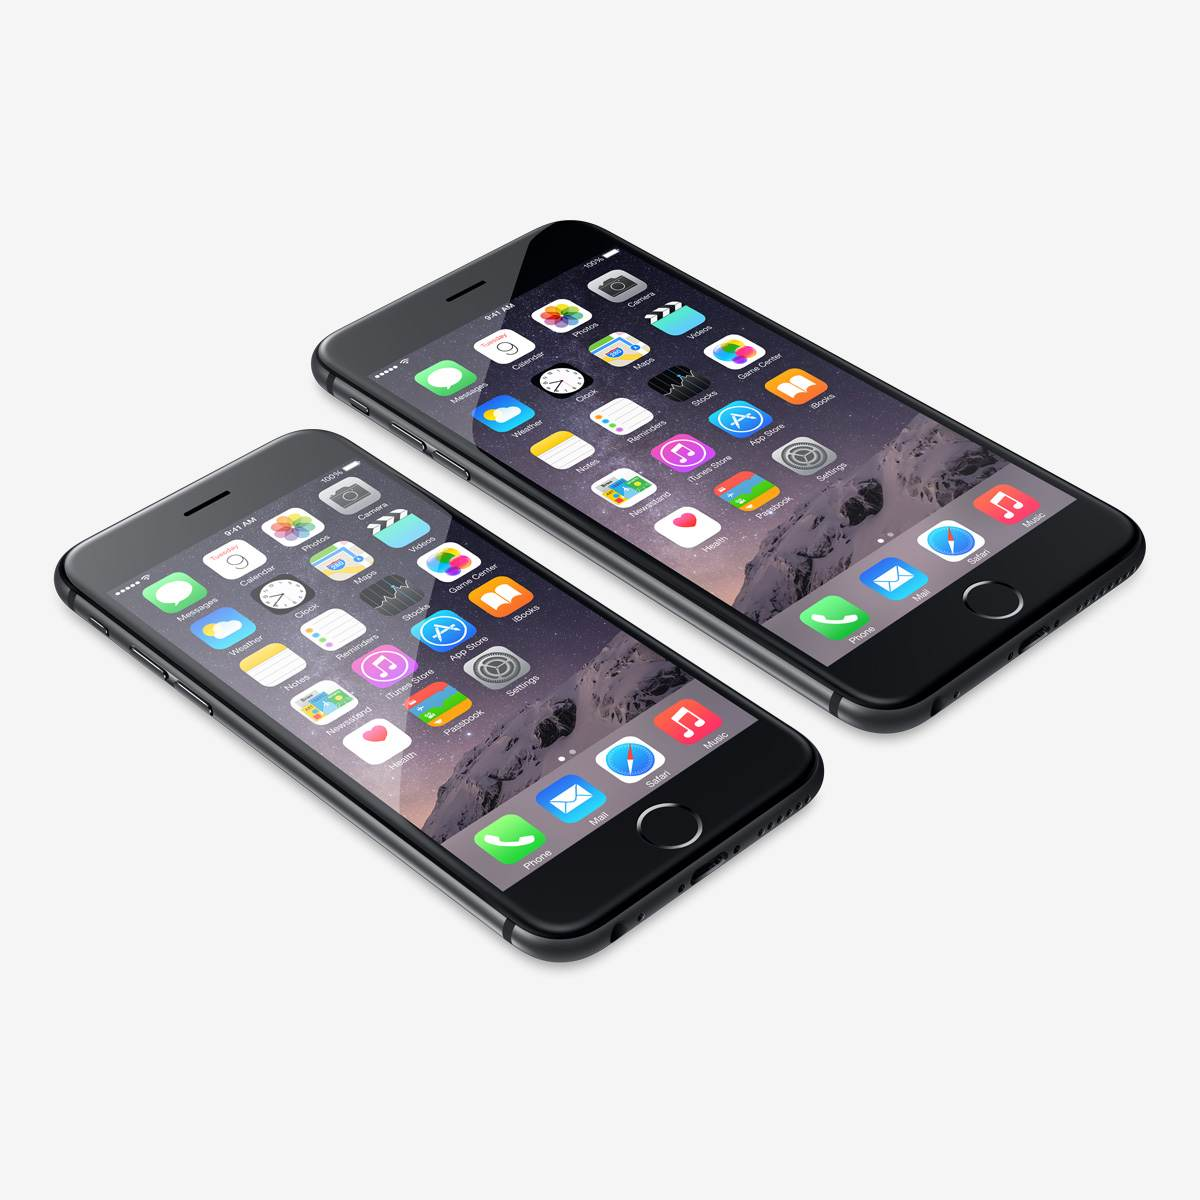 Apple iPhone 6 Review - Top Rated Smartphone 2015 as The Best Smartphone on The Market